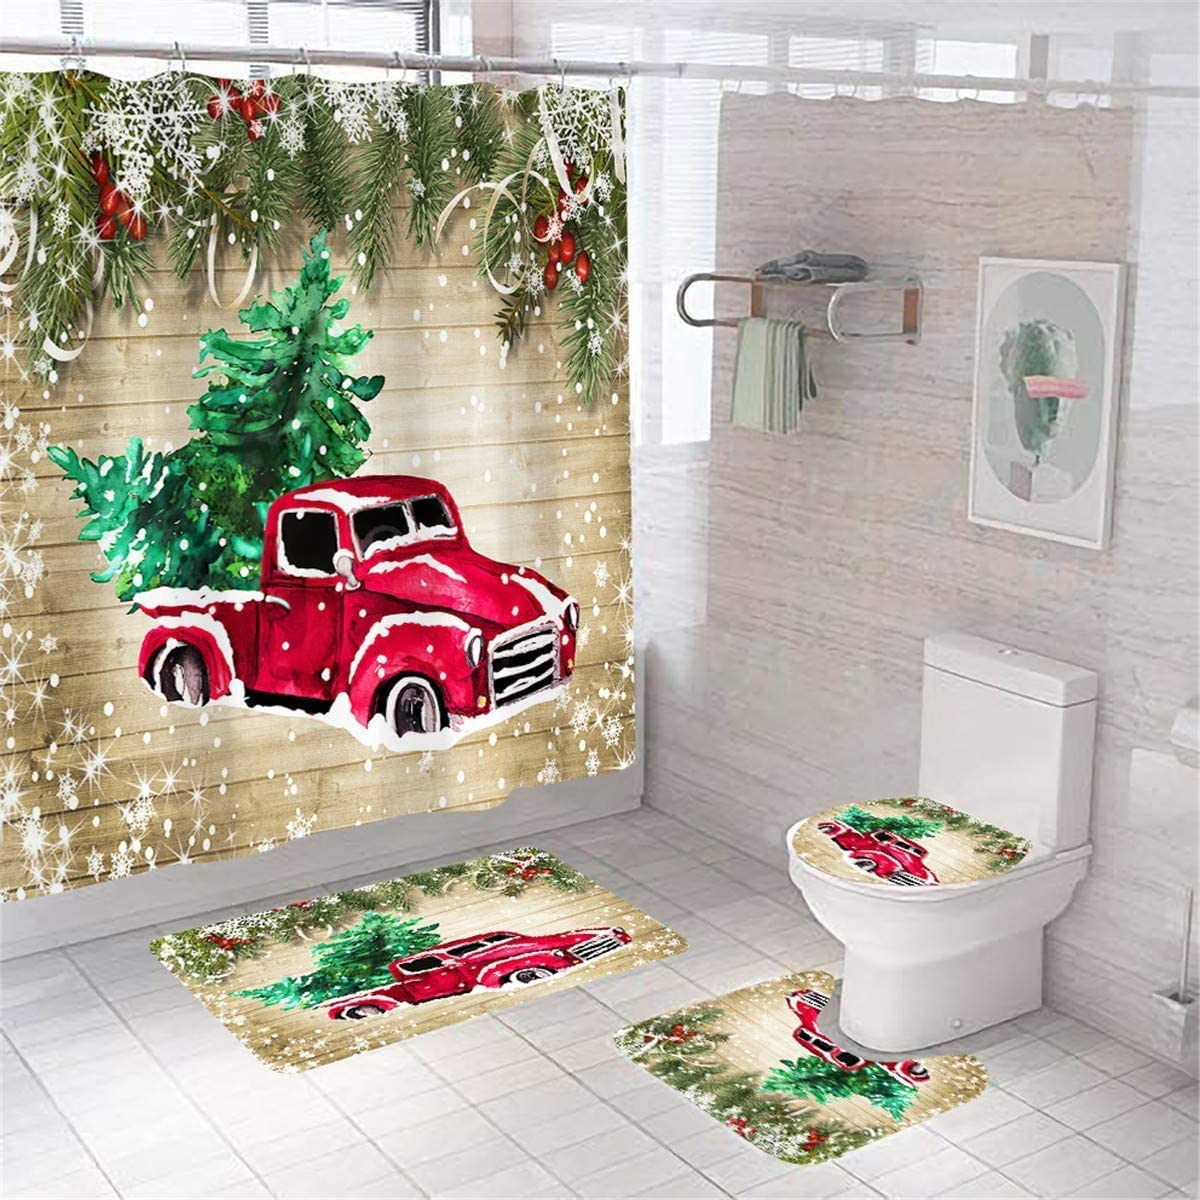 Christmas Shower Curtains for Bathroom Red Truck Shower Curtain Xmas Tree Snowflake Farmhouse Christmas Shower Curtain Sets Waterproof Bathroom Set